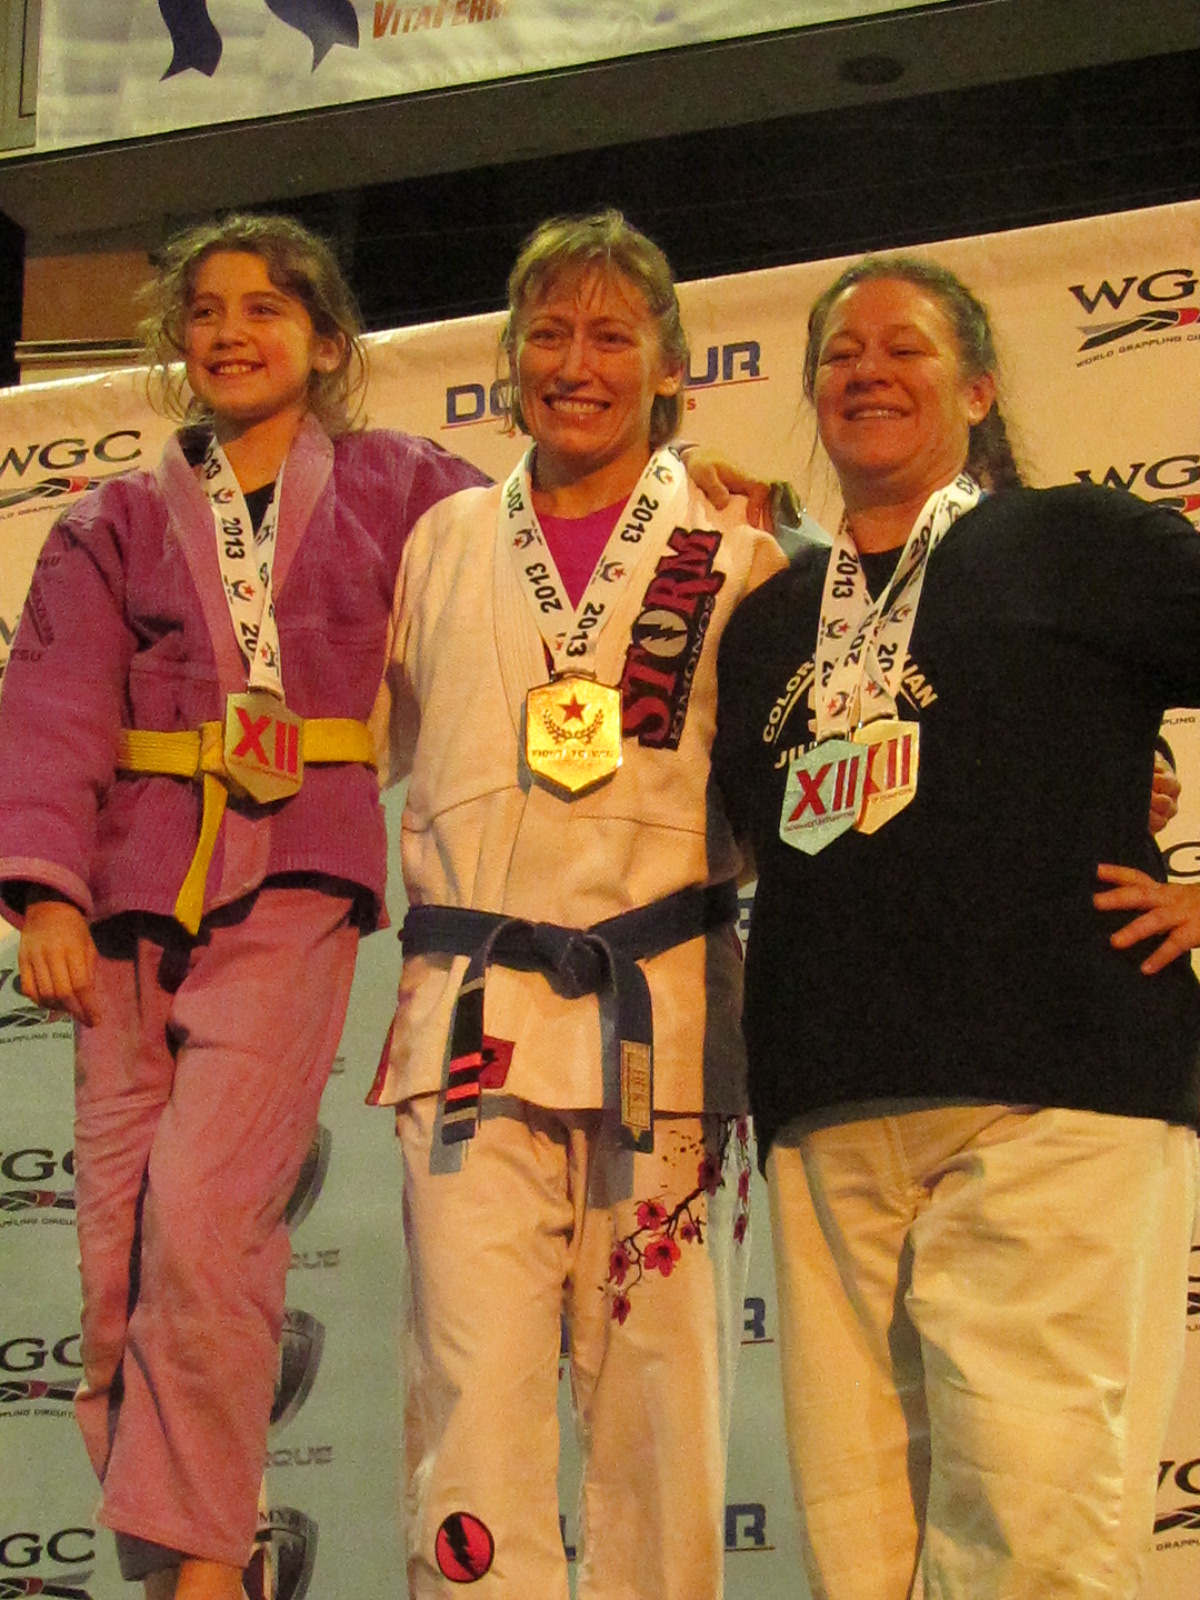 CBJJ Stapleton Ladies on the Medal Stand - 2013 Fight To Win Tournament of Champions 12 - Kate Stewart (Gold) - Teri Stewart (Gold) - Heather Westman (Silver & Bronze)